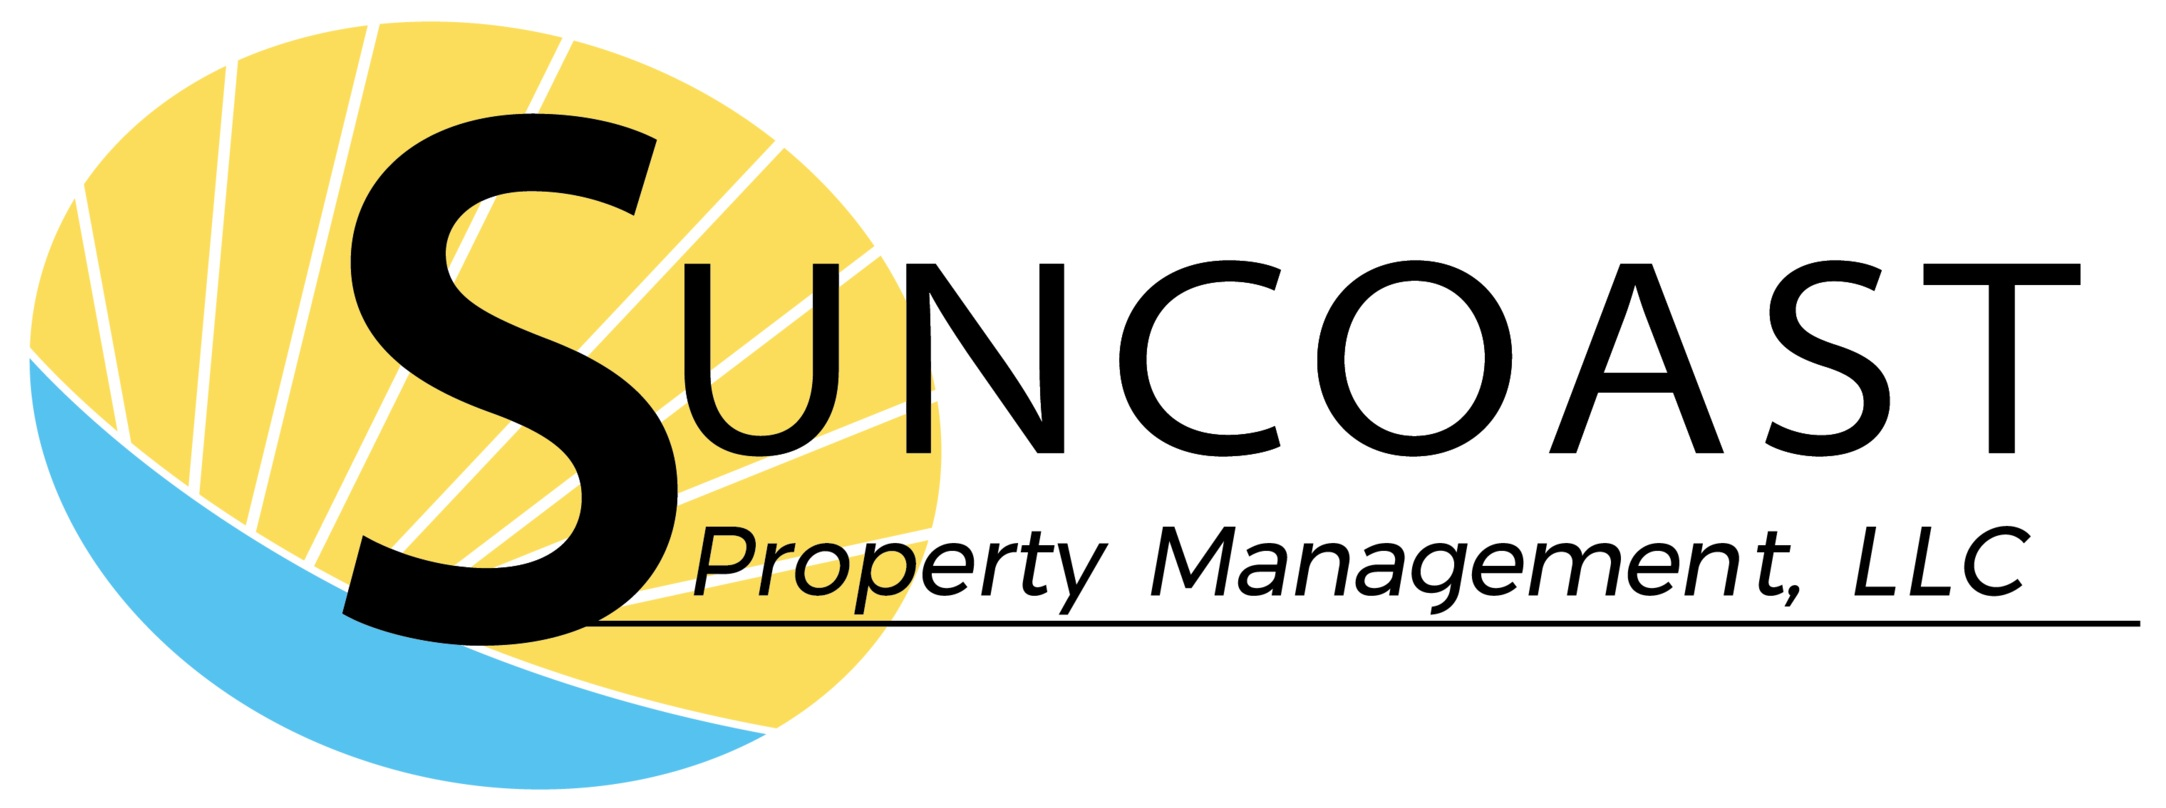 Suncoast Property Management Staff Available 24/7 for You